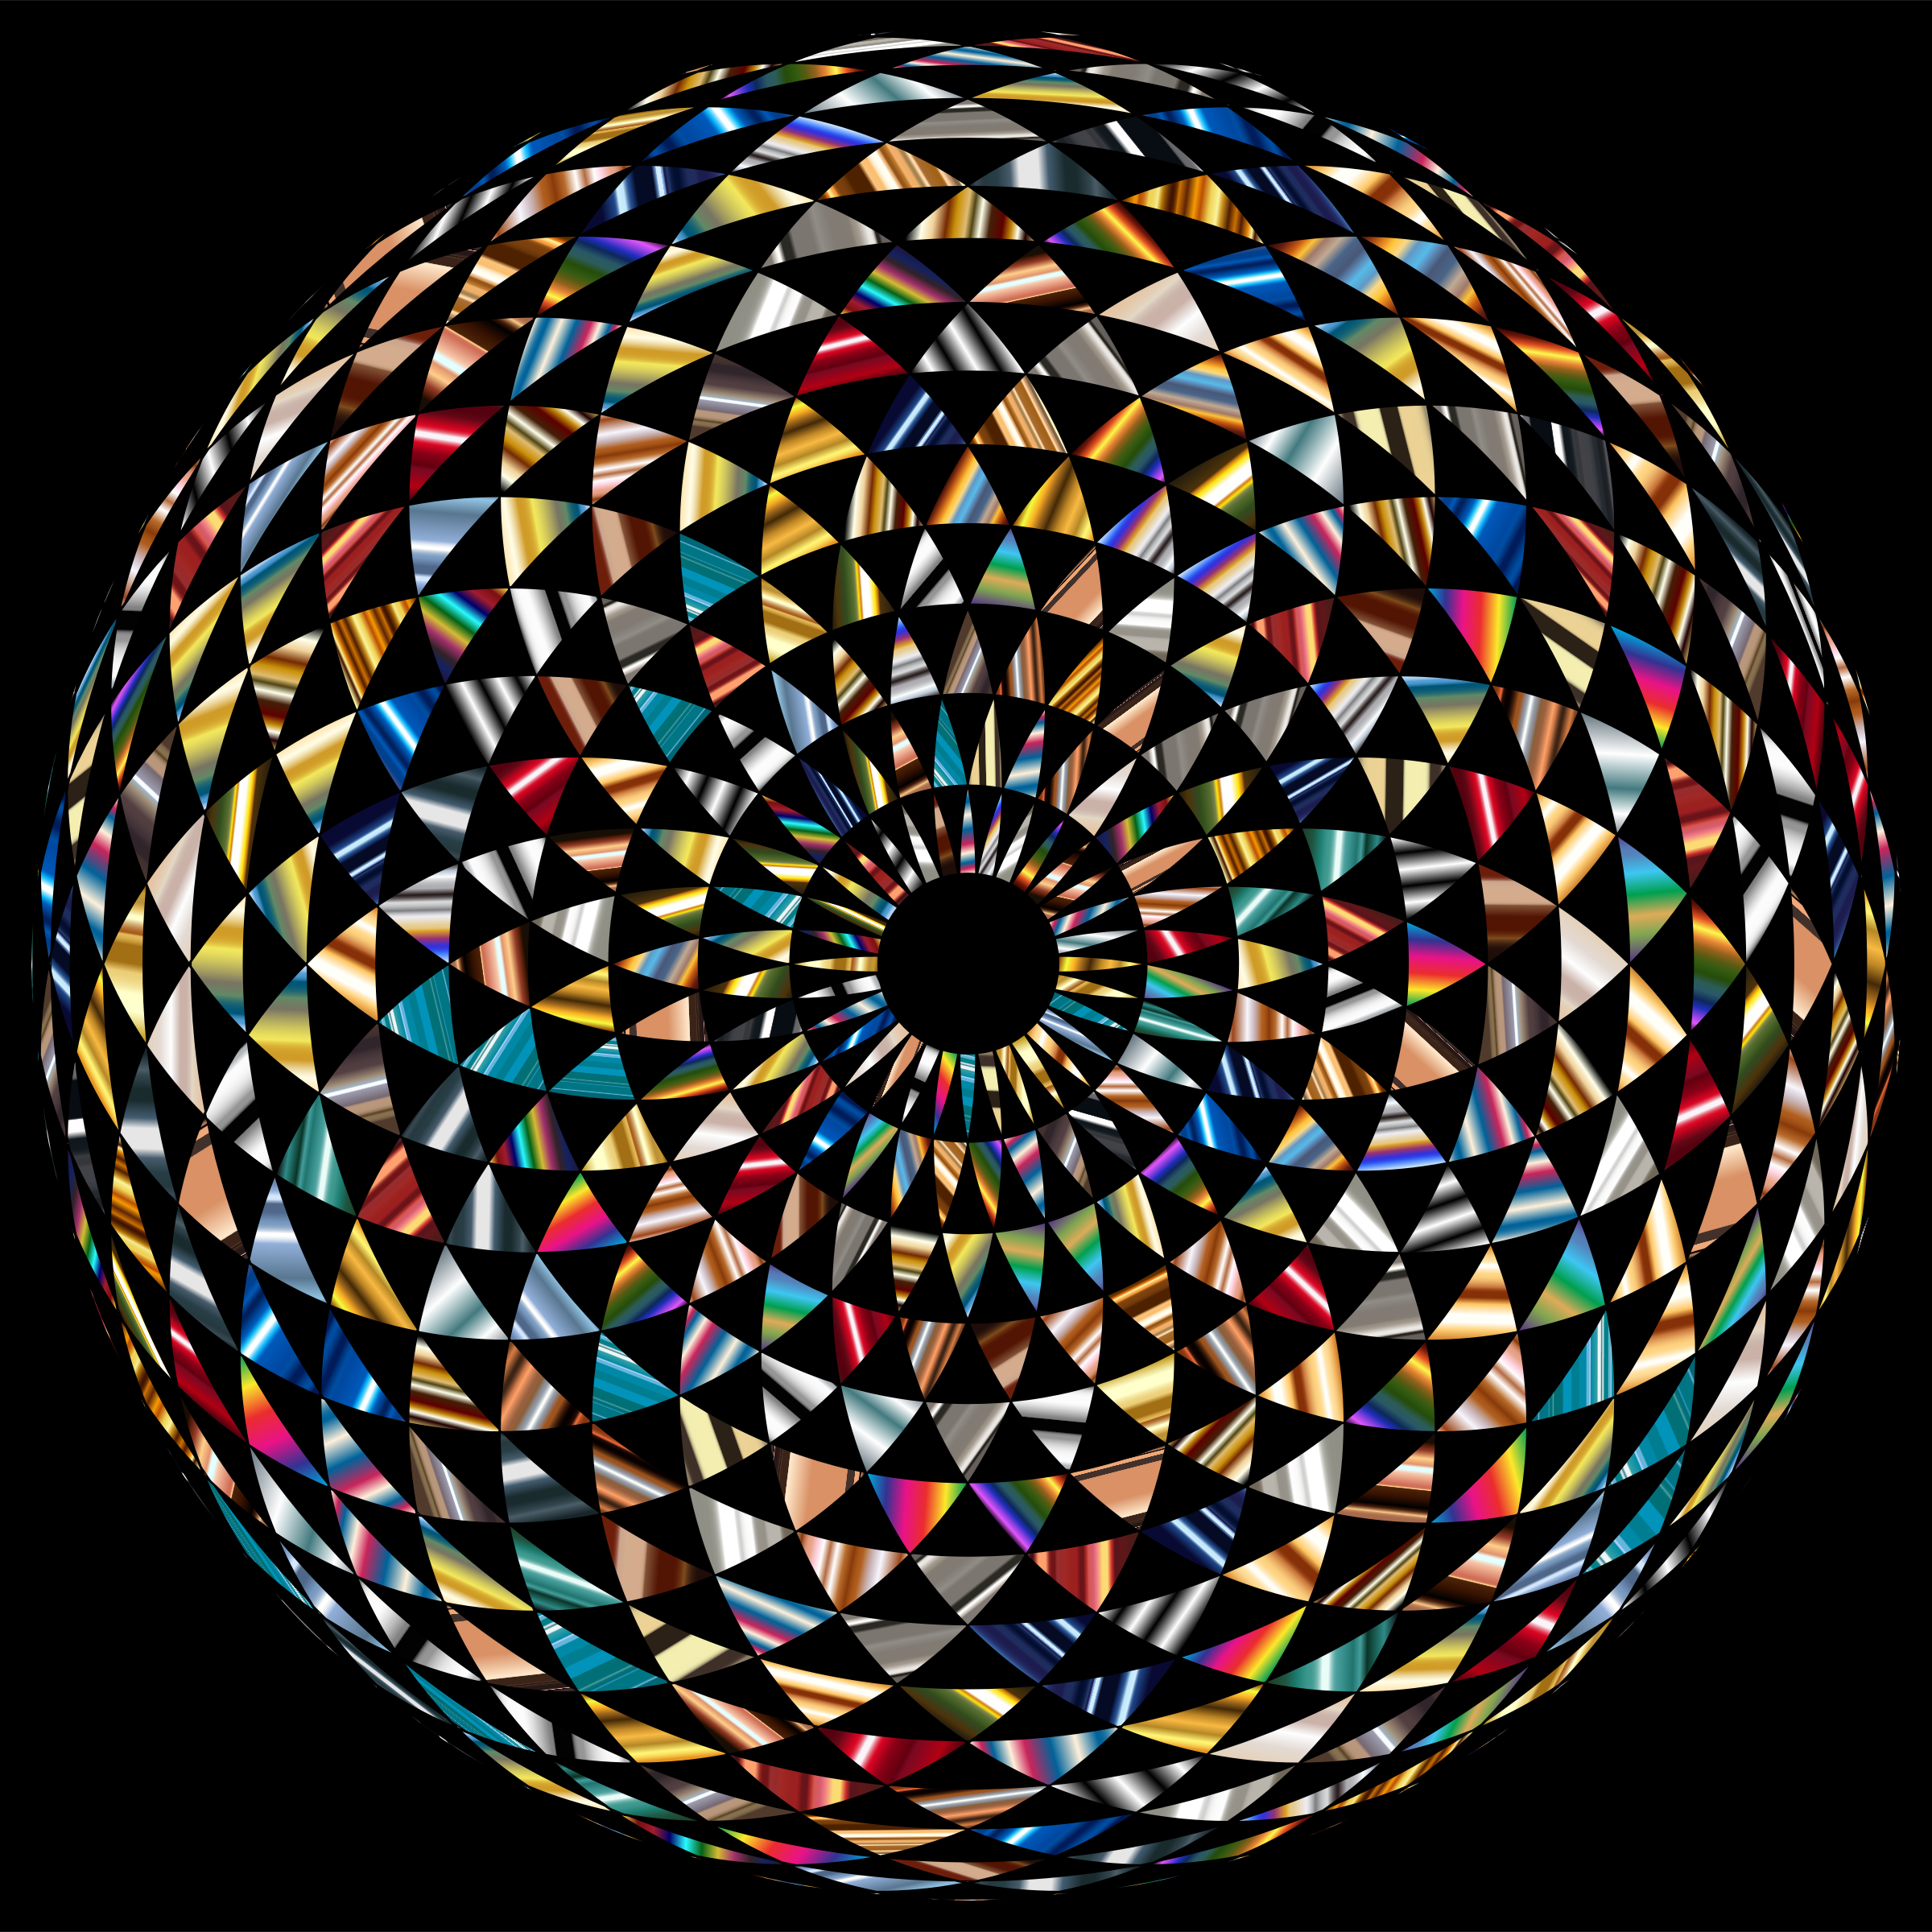 Clipart - Colorful Toroid Mandala 6 With Black Background